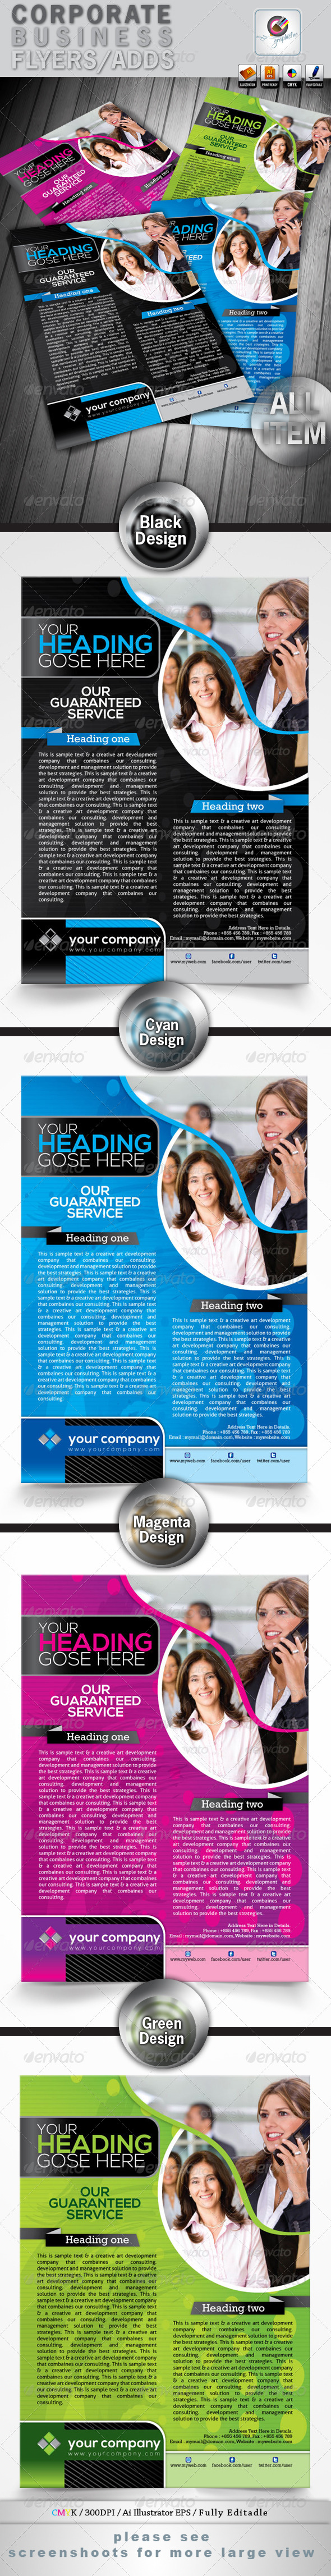 Corporate Business Flyers/Adds - Corporate Flyers